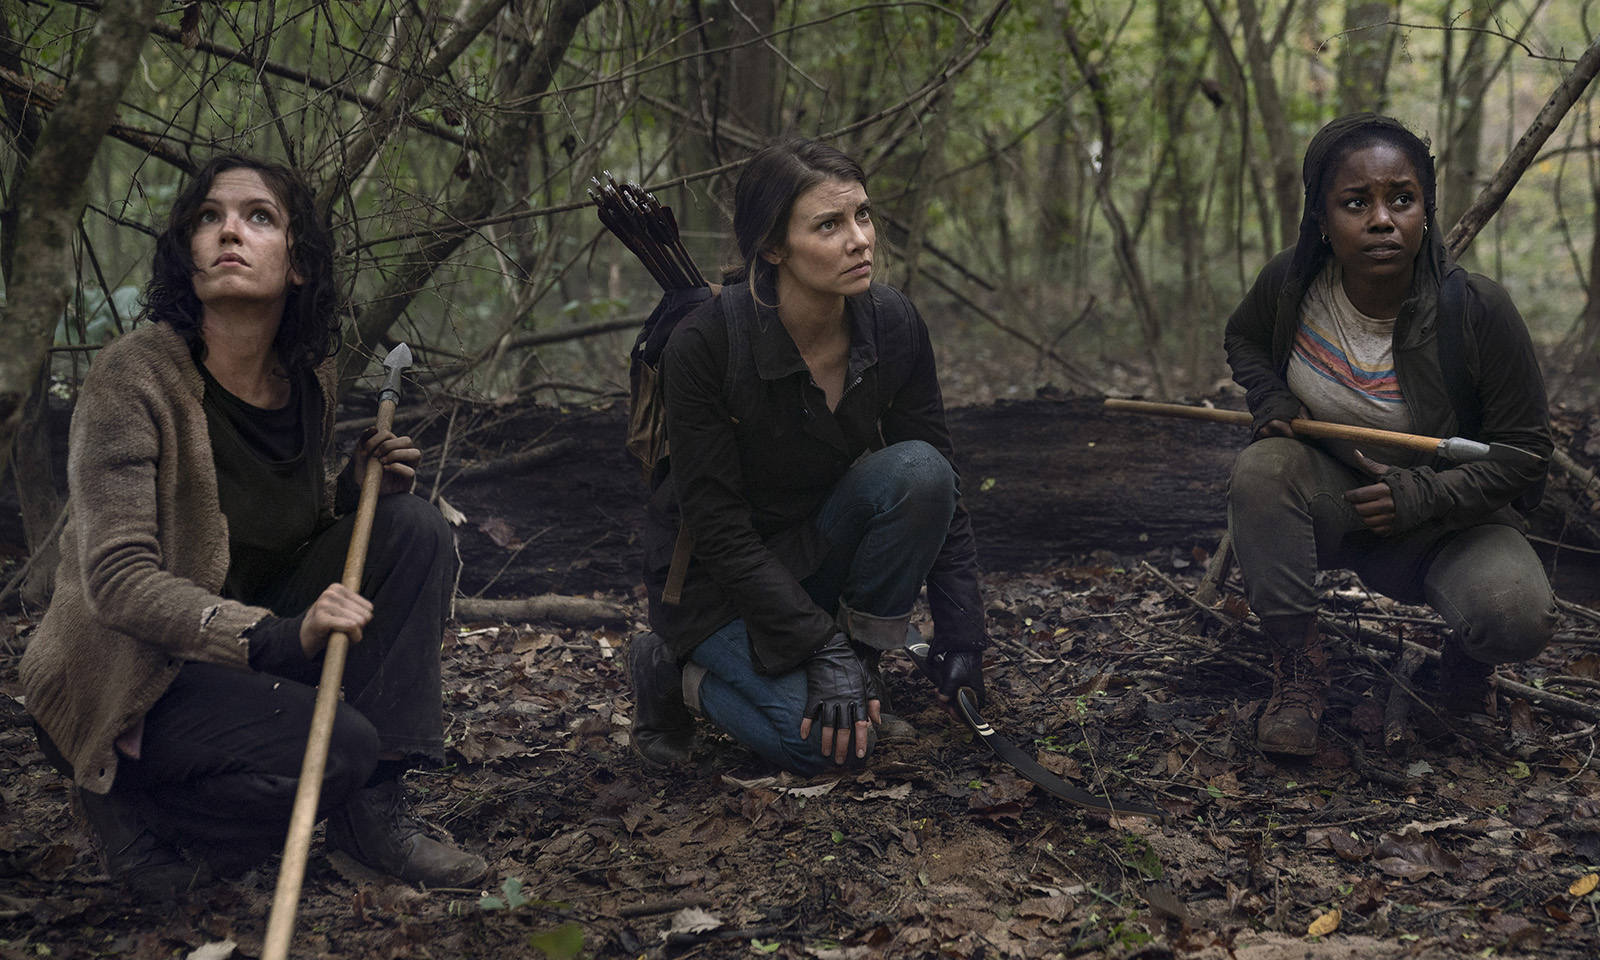 Ainsley, Maggie e Maya escondidas na floresta em imagem do episódio 17 da 10ª temporada de The Walking Dead